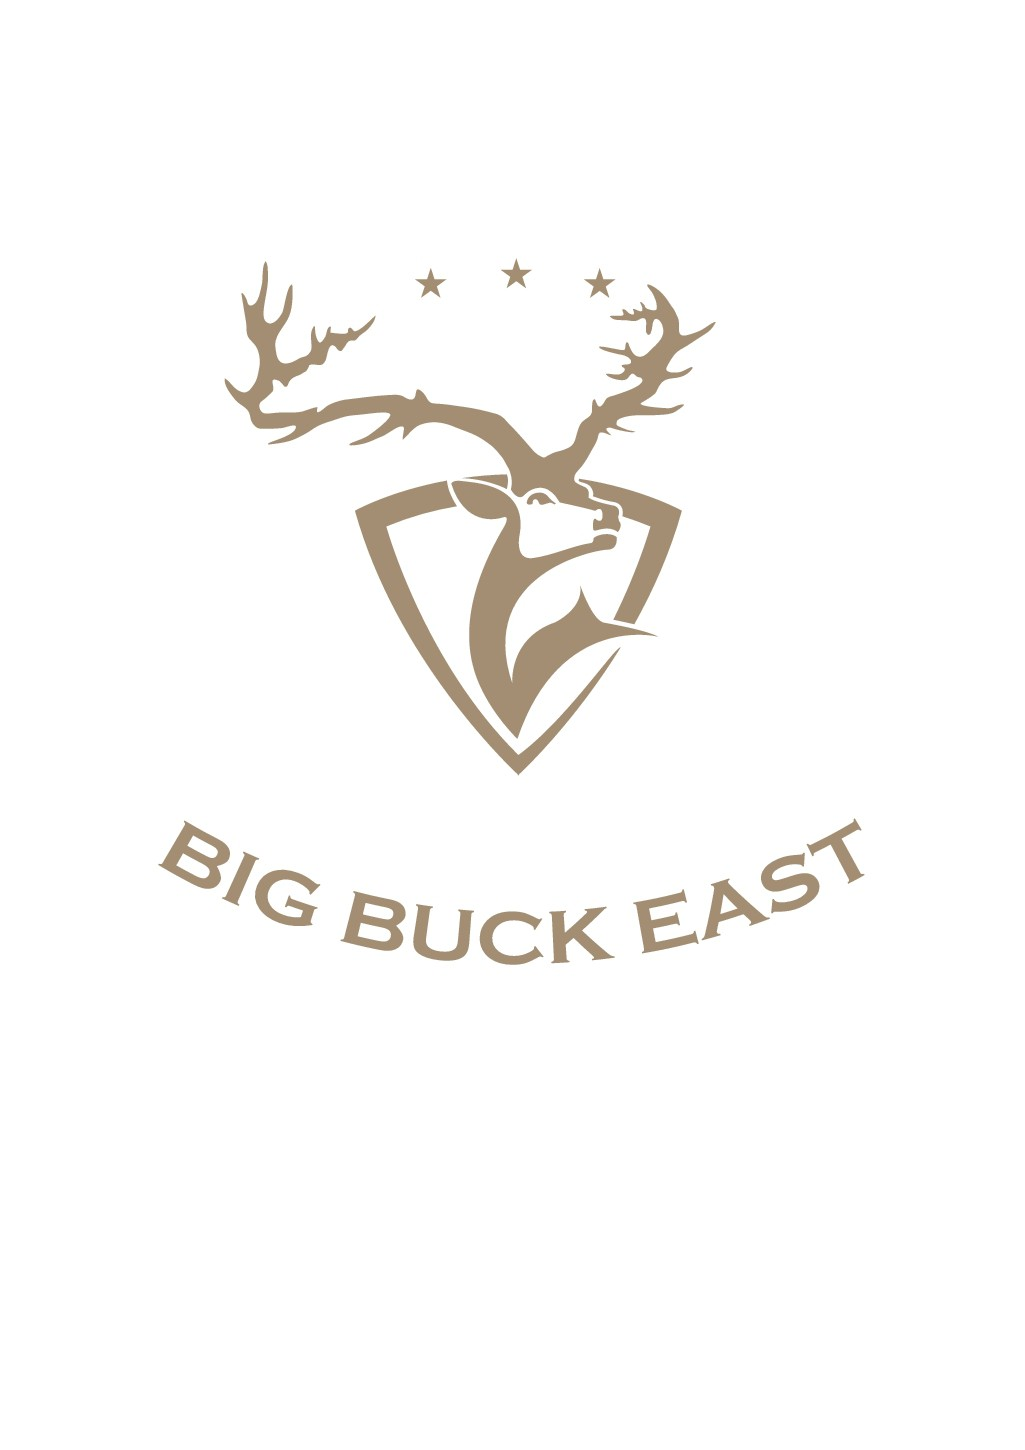 Help us raise big bucks for a good cause with your BIG BUCK design!